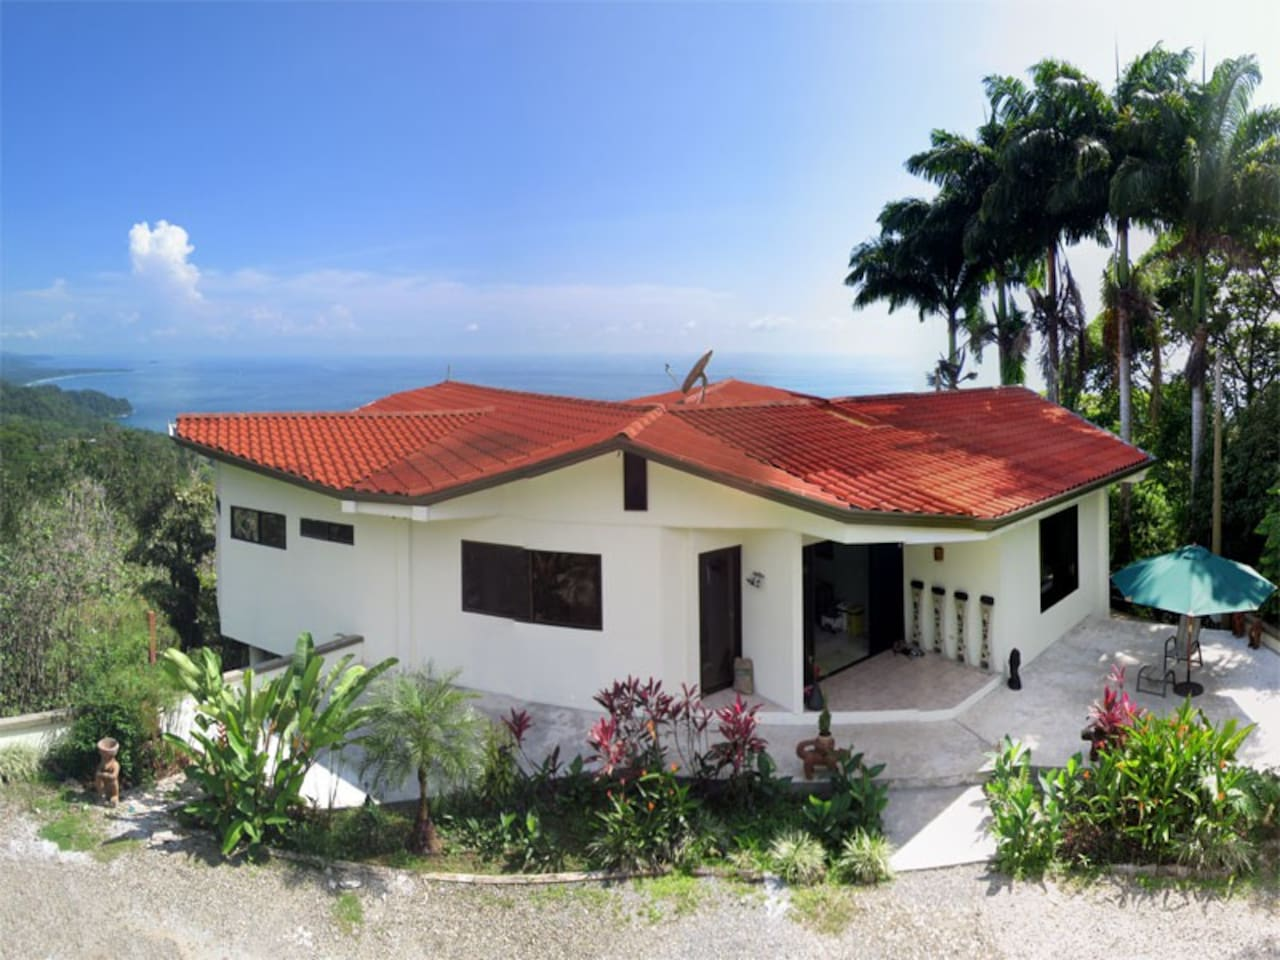 Our main house